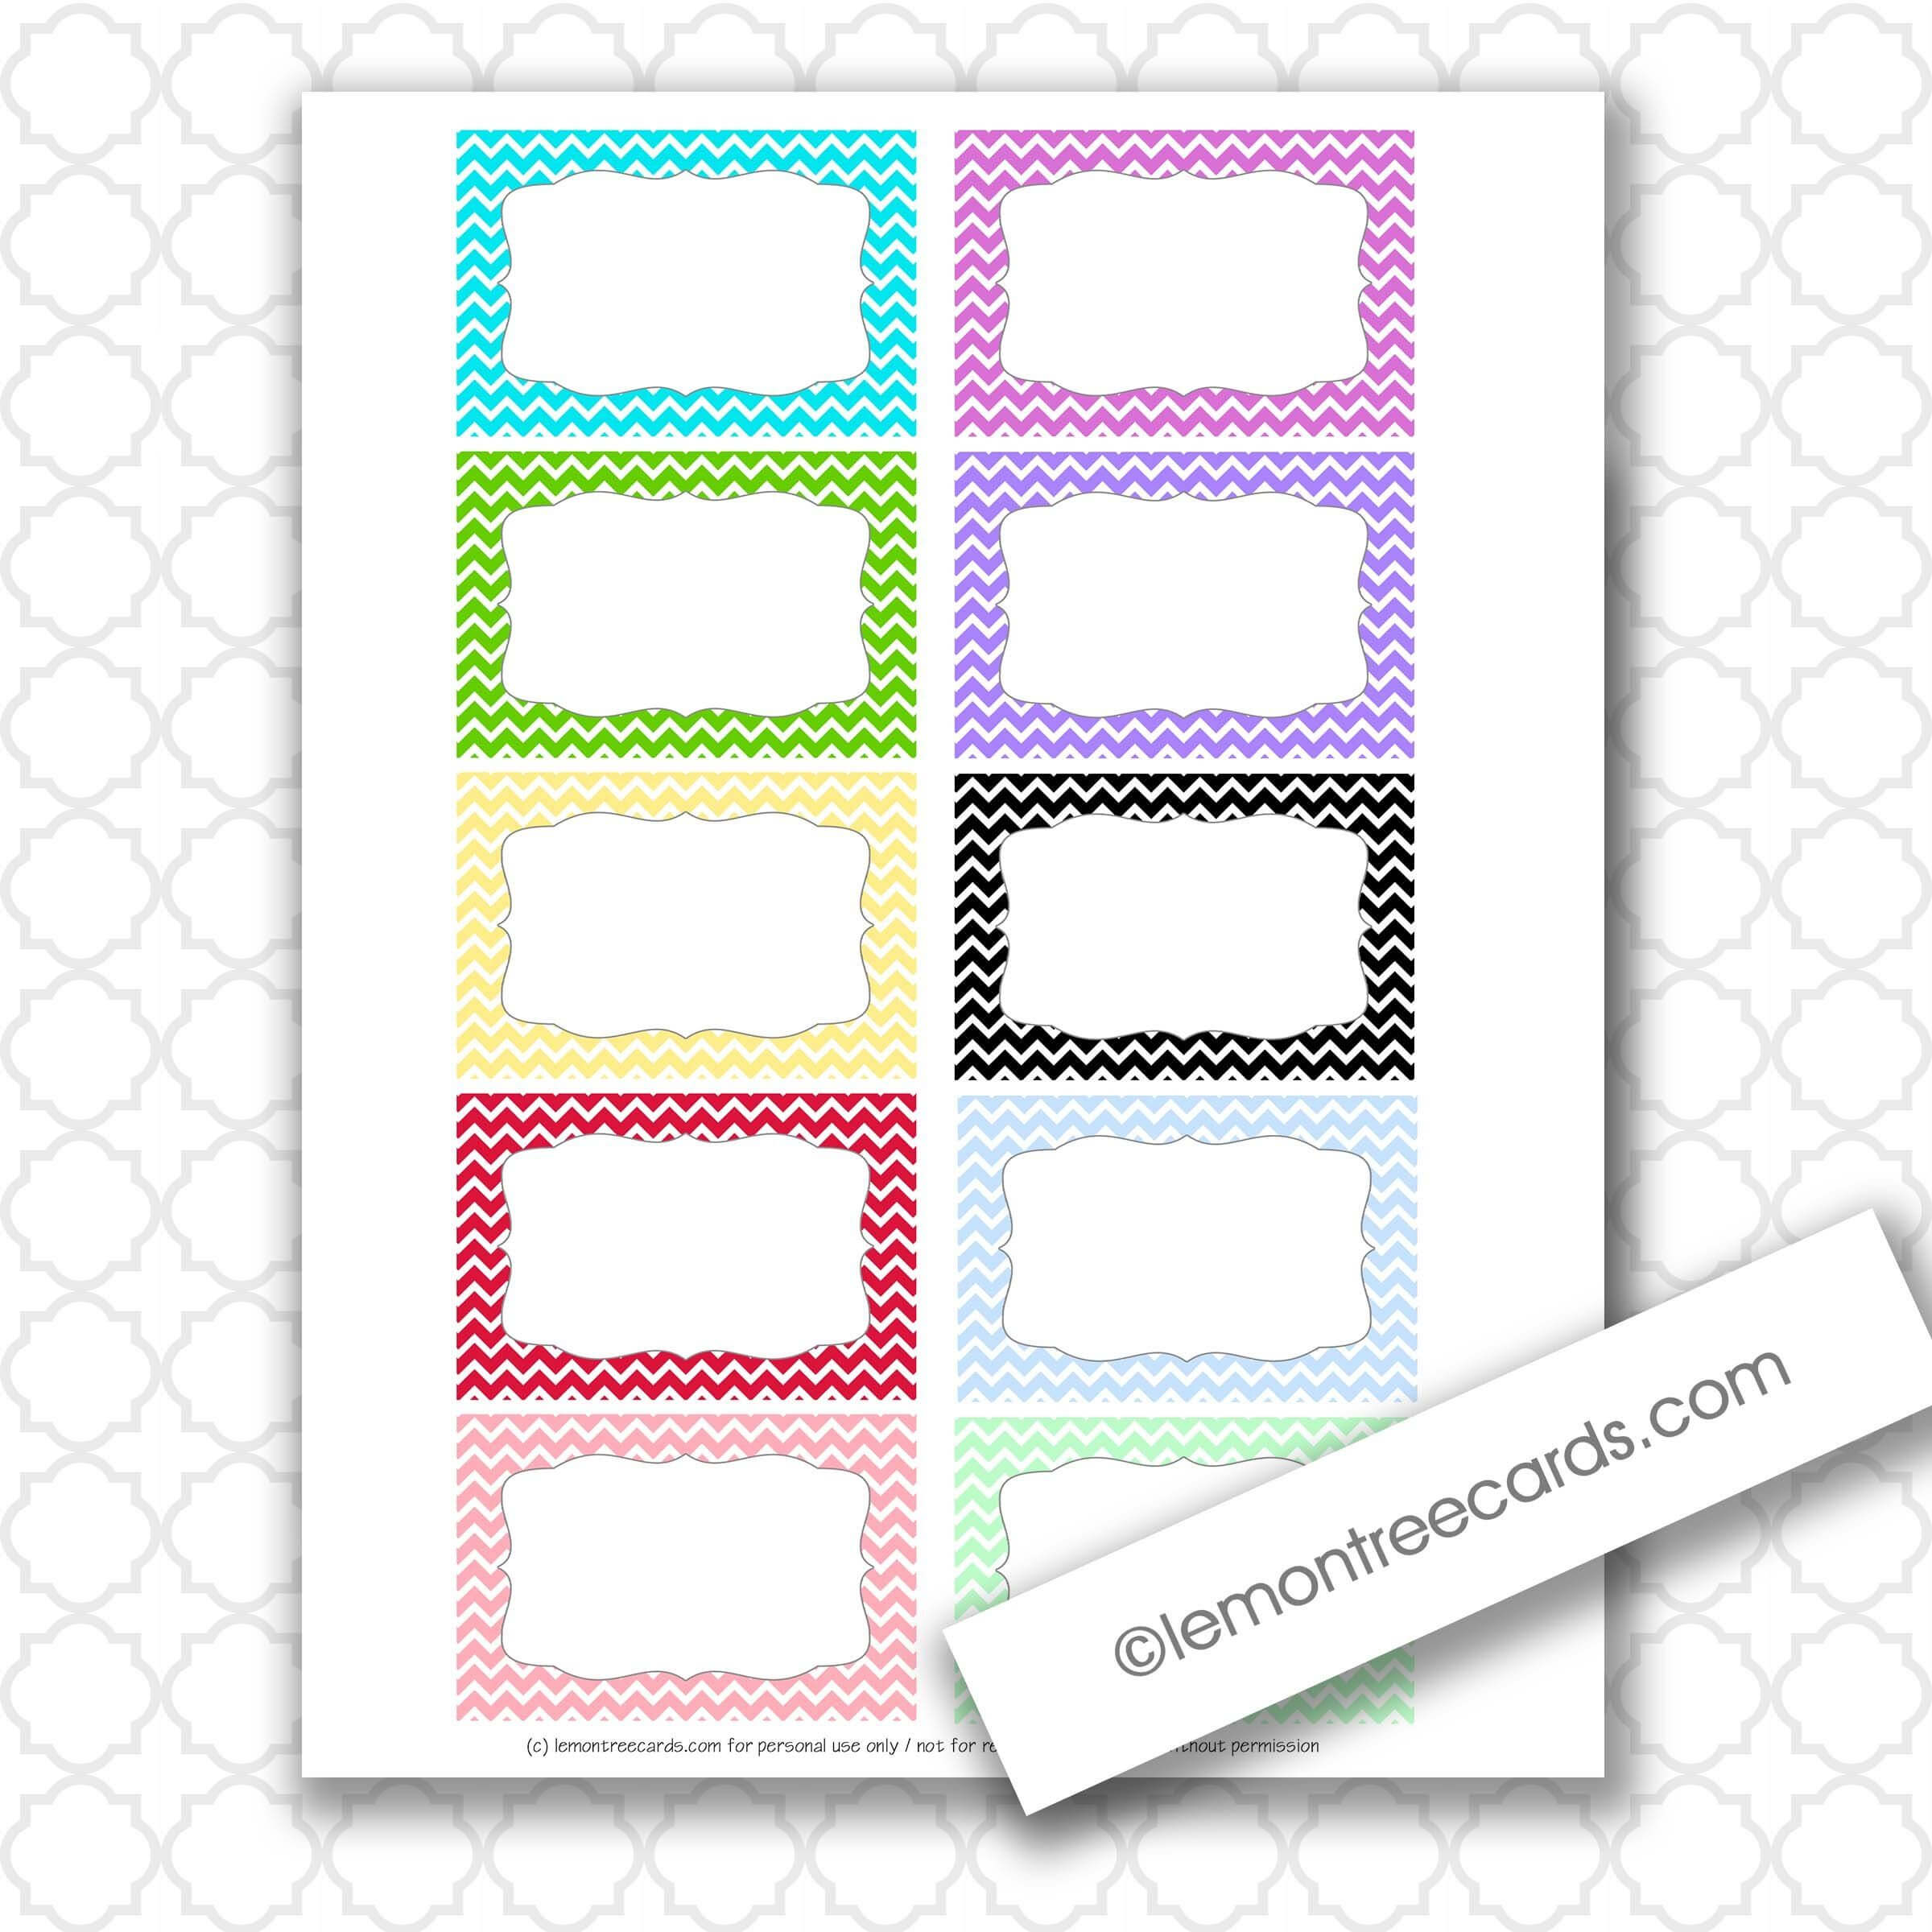 015 Bg1 Template Ideas Free Index Surprising Card Word For Blank Index Card Template